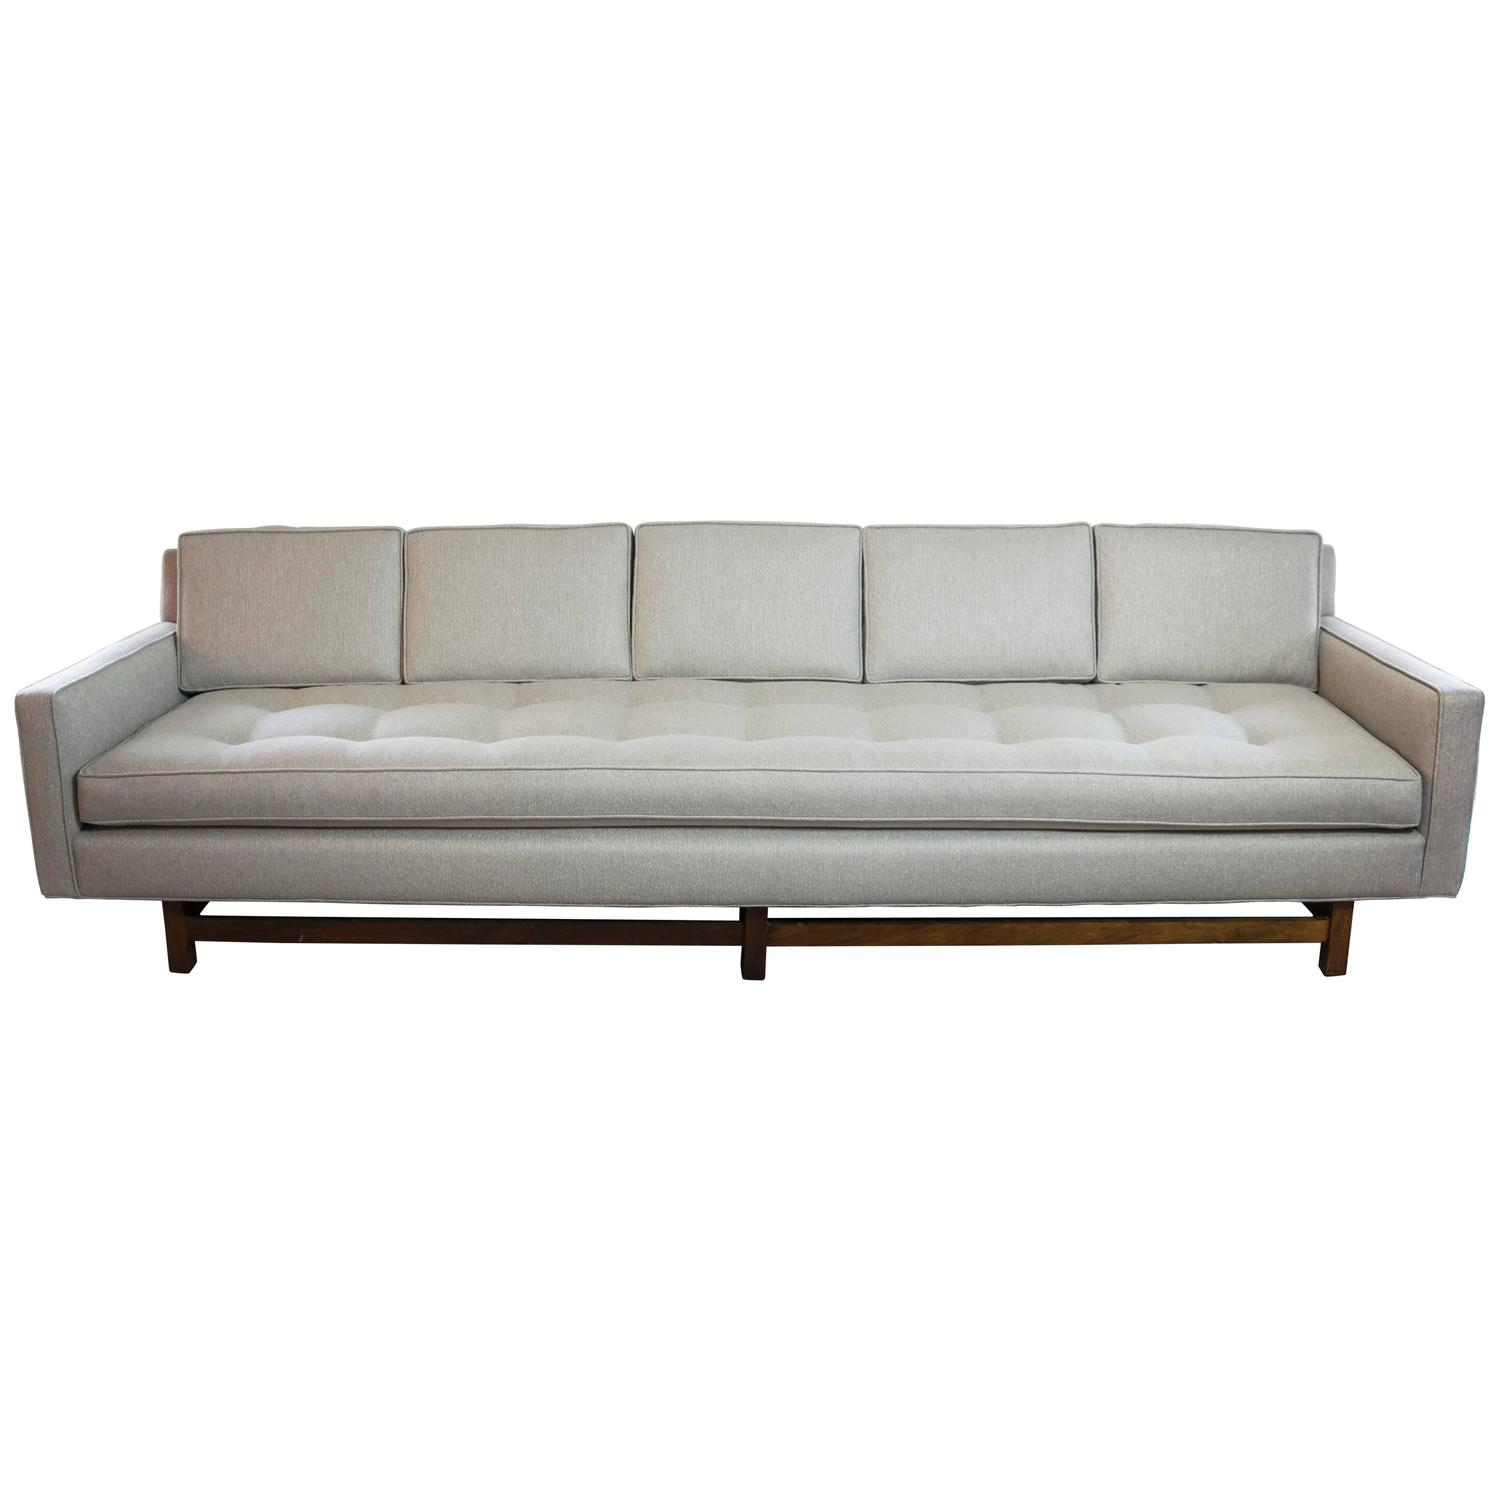 Extra long tuxedo sofa in the style of dunbar for sale at for Long couches for sale